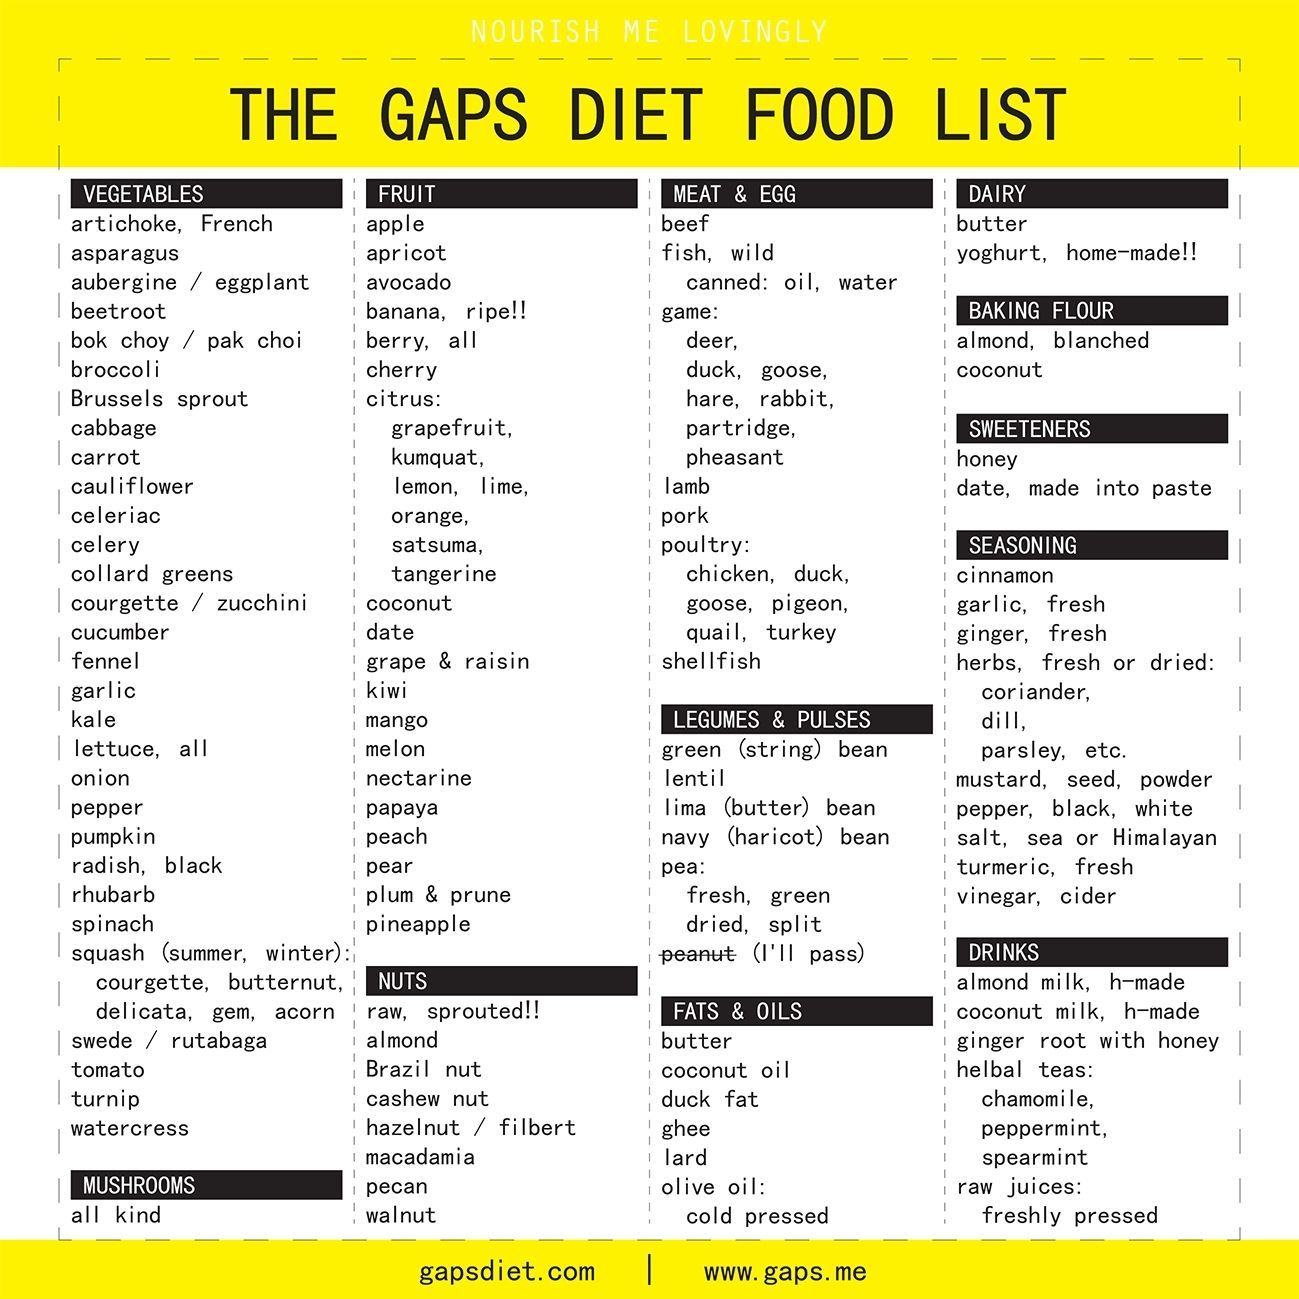 nourish me lovingly: the gaps diet food list in gaps diet food list